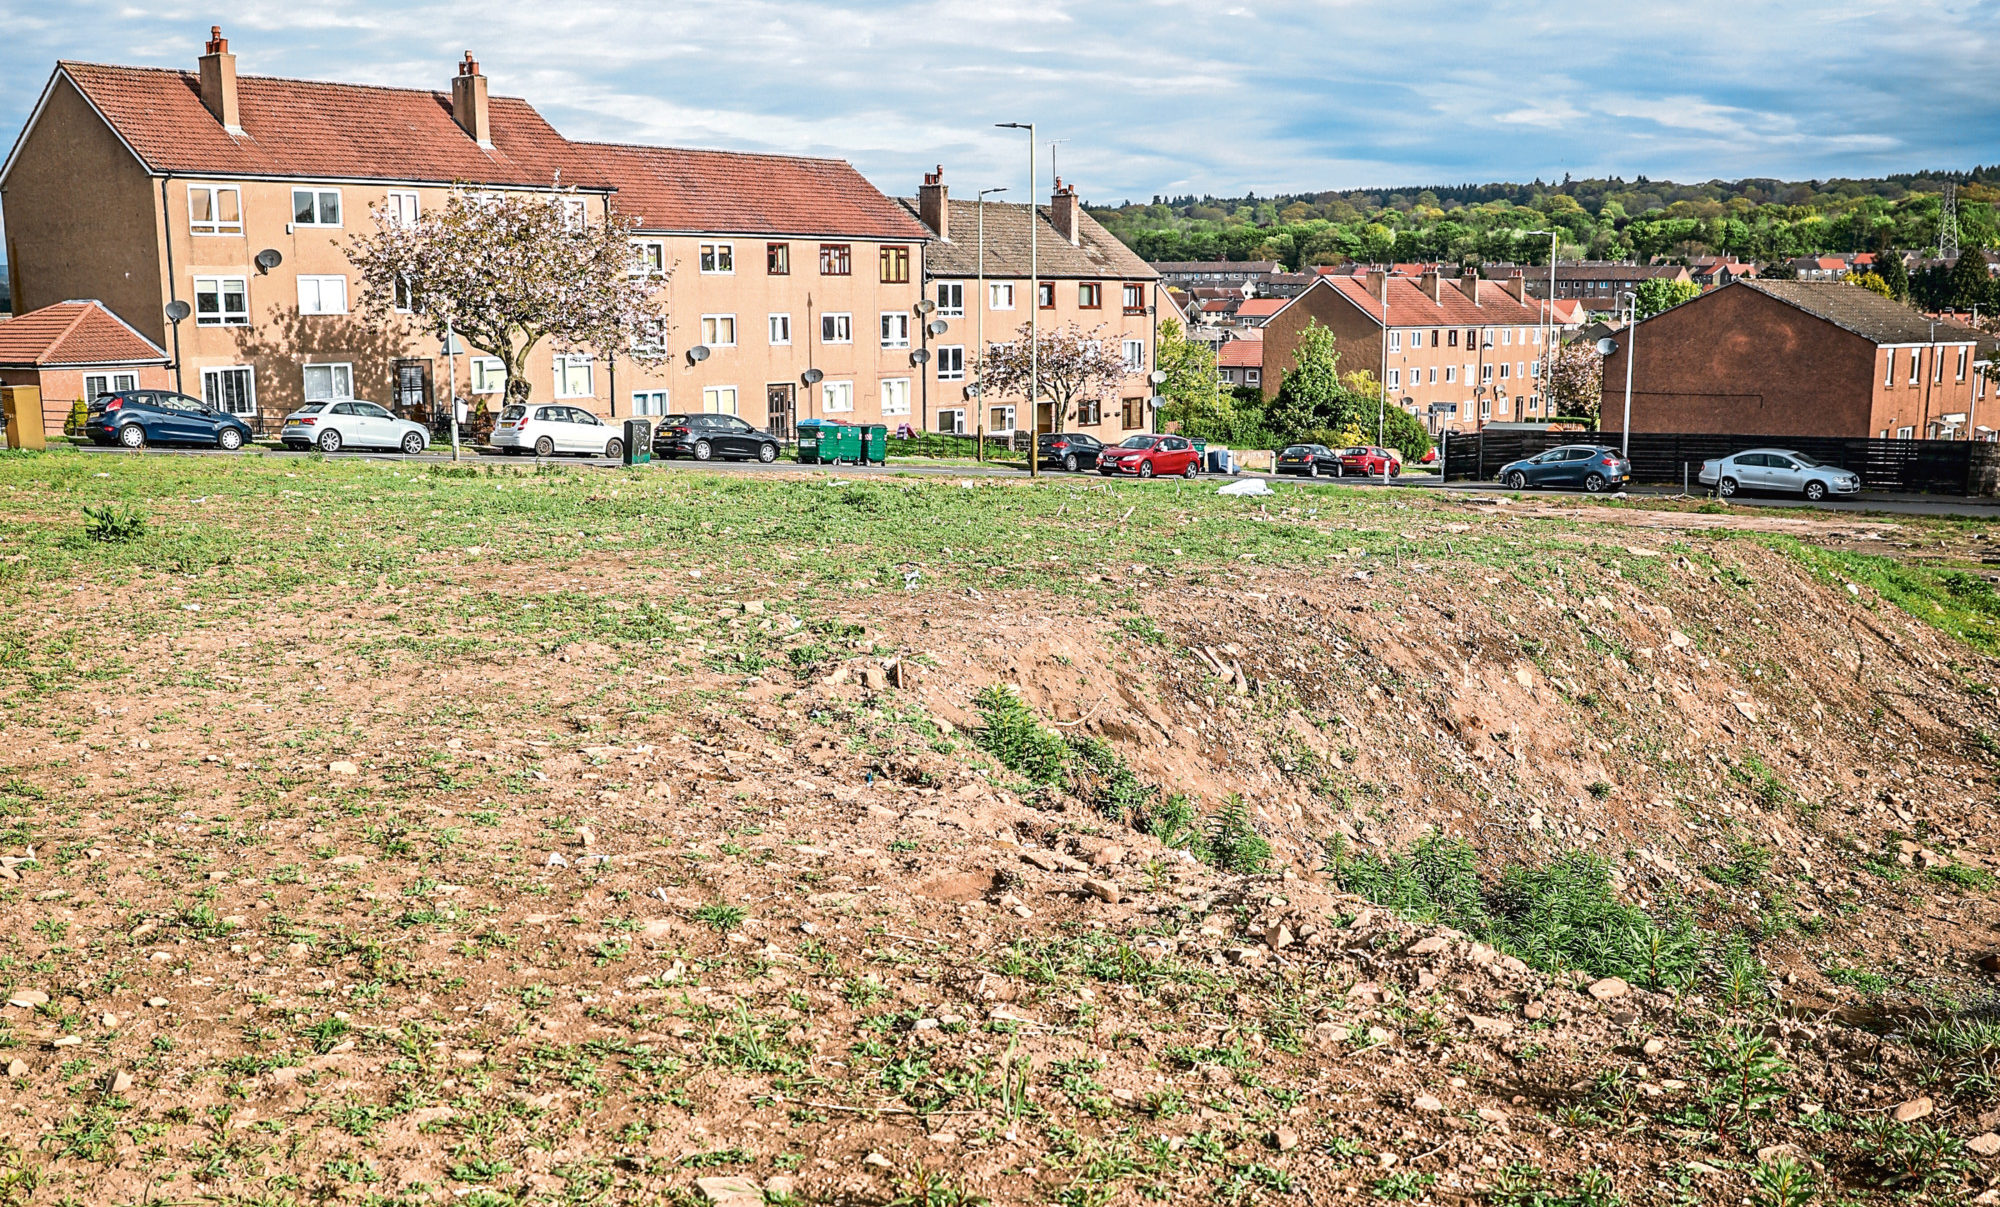 The proposed site, looking towards Buttars Loan